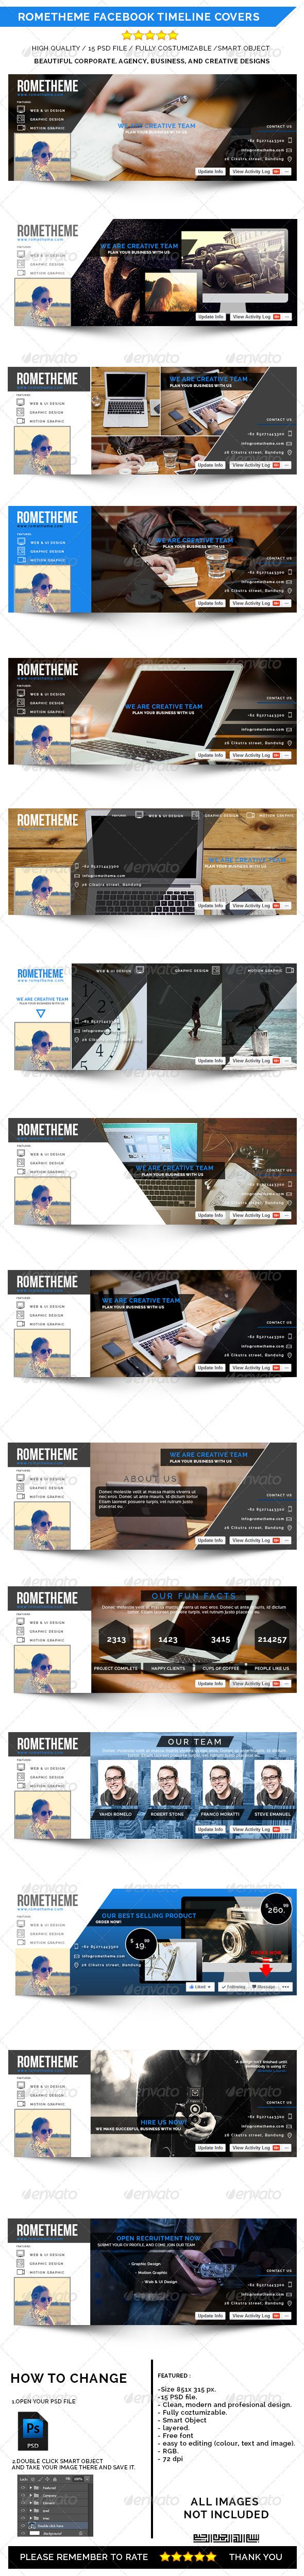 Rometheme Facebook Timeline Cover, High quality, easy to editable, fully costumizable, Smart Object, 72 dpi, for your corporate, creative, agency, and business facebook timeline cover.#Graphicriver  #FacebookTimelineCover #FacebookTImeline  #Facebookprofile #TimelineCover # profileCover #Facebookcover #webelement #cover #business #corporate